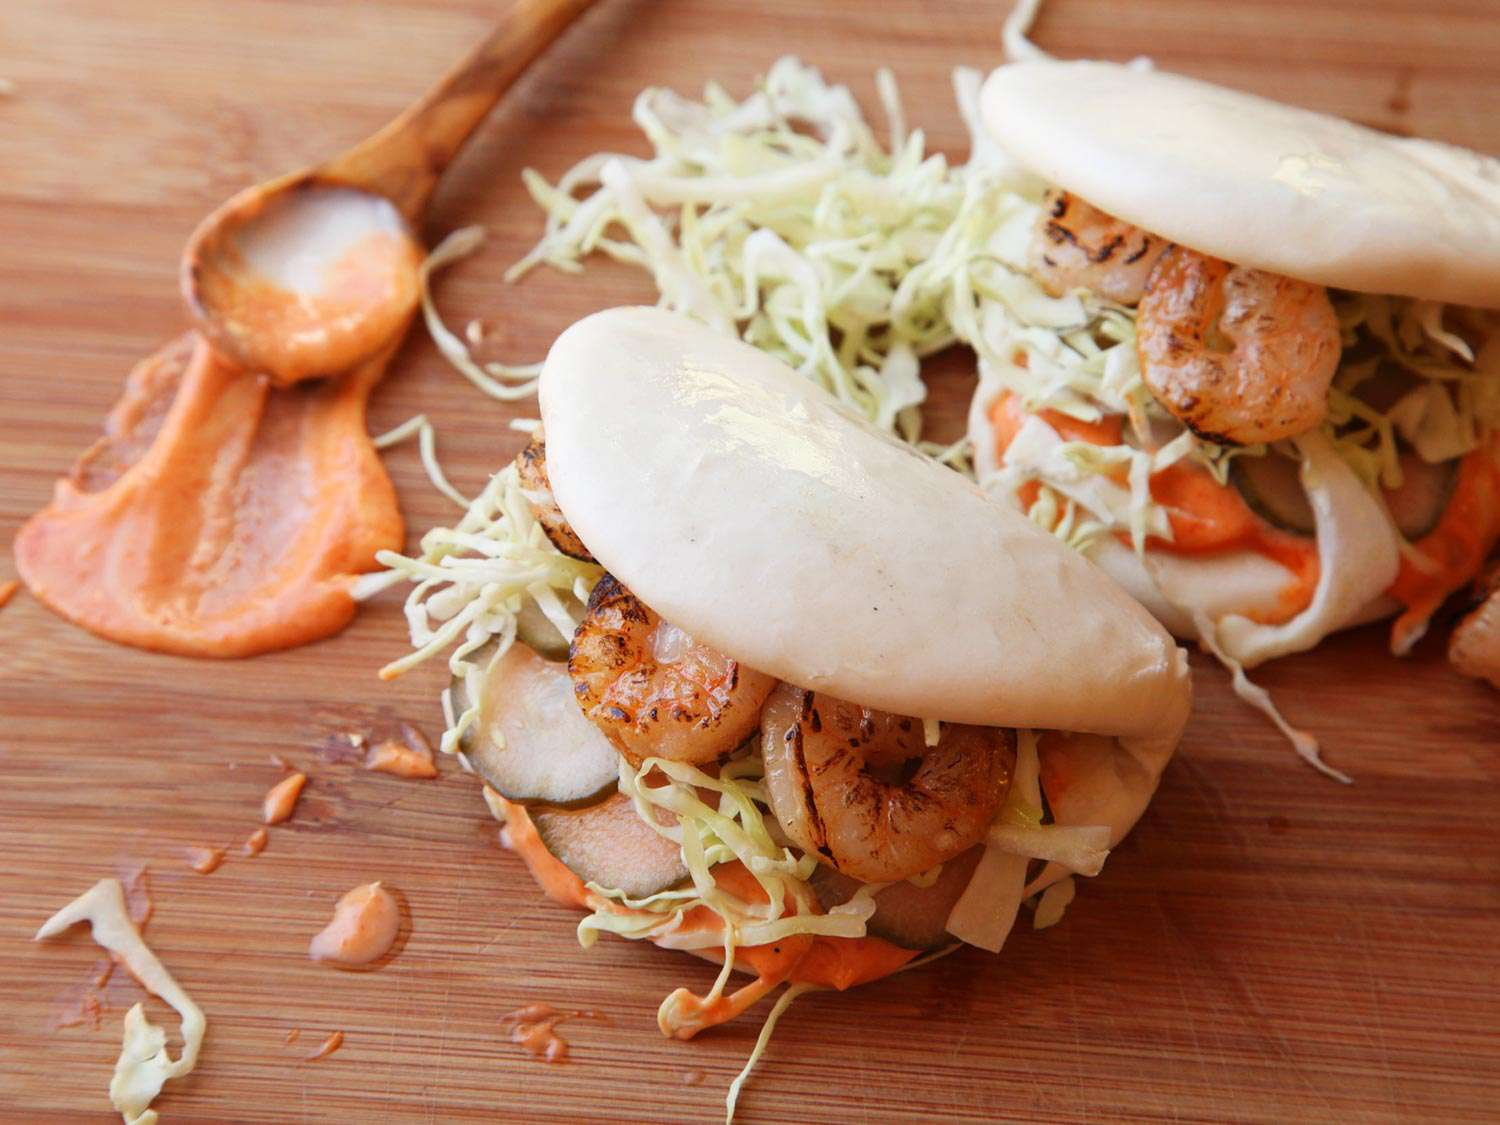 Steamed buns with grilled shrimp and sriracha mayo